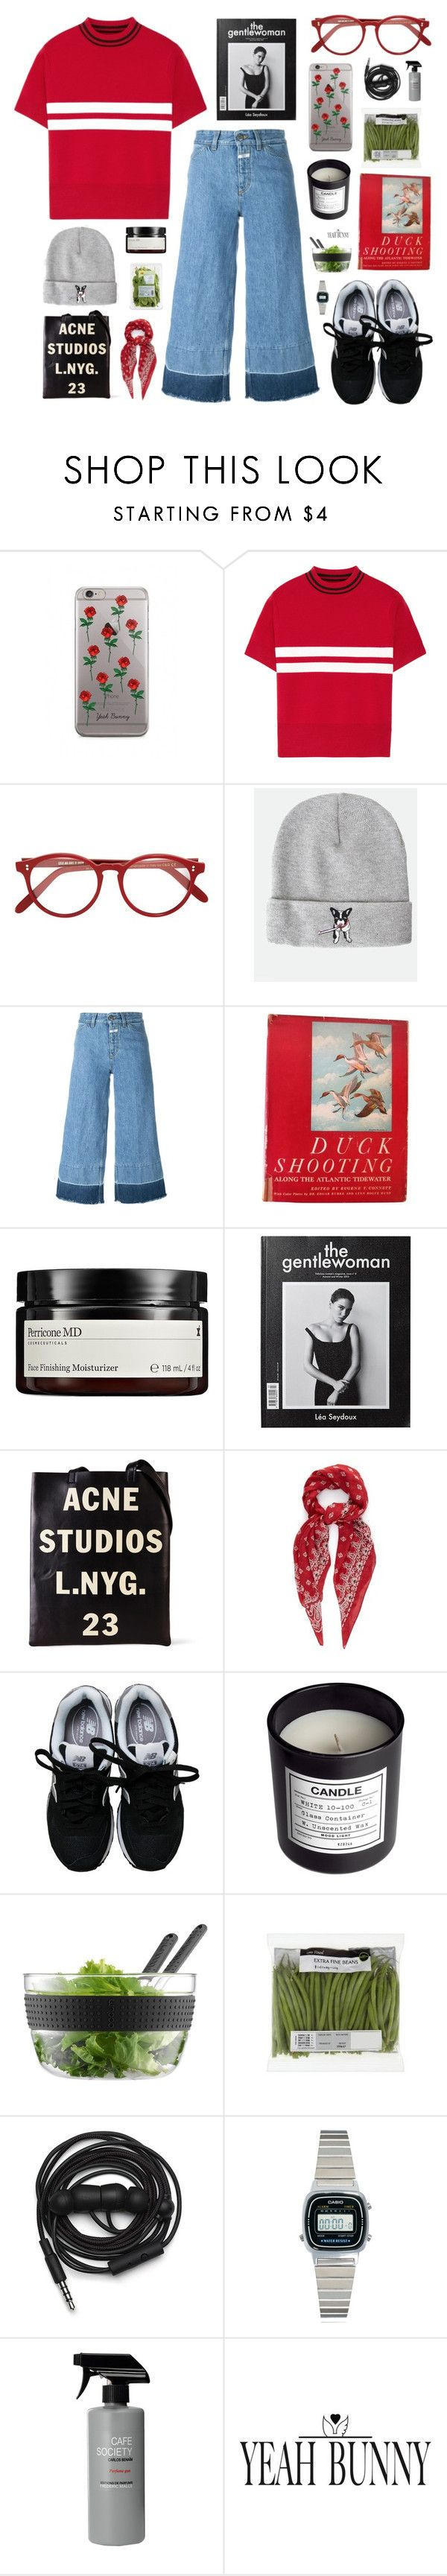 """""""Yeahbunny"""" by jesicacecillia ❤ liked on Polyvore featuring Tim Coppens, Cutler and Gross, Closed, Perricone MD, Acne Studios, Yves Saint Laurent, New Balance, H&M, Bodum and Urbanears"""